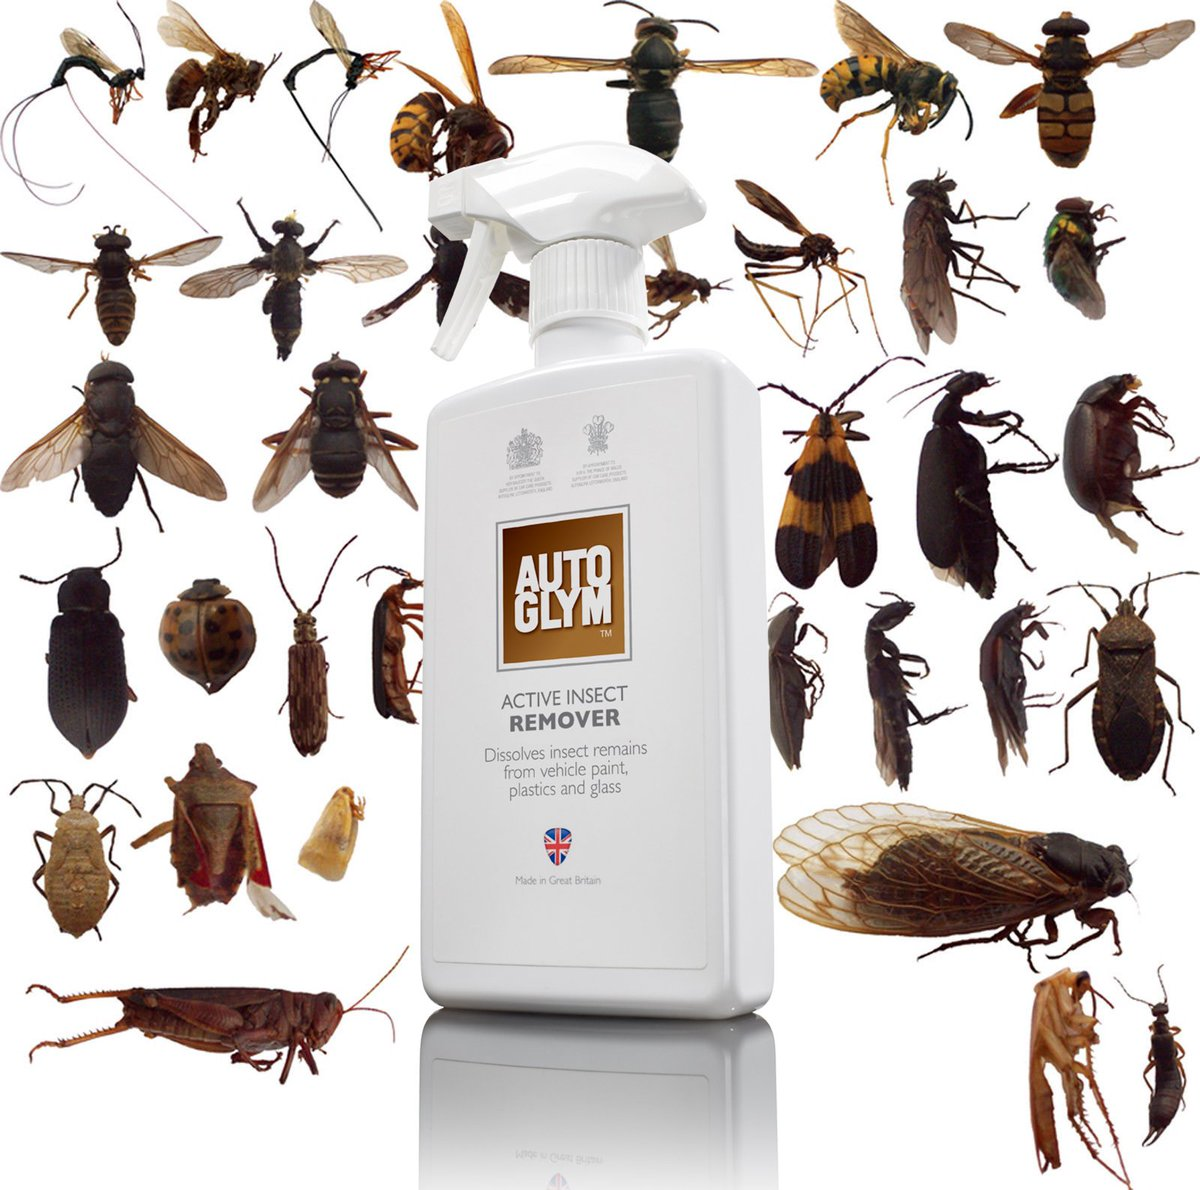 🦗🤓 ! INSECTS ASIDE ! 🤓🦗Yesterday we asked what BUGS you most about removing insect remains from your pride and joy. Click here to see our best product and method for tackling this issue https://www.autoglym.com/active-insect-remover …